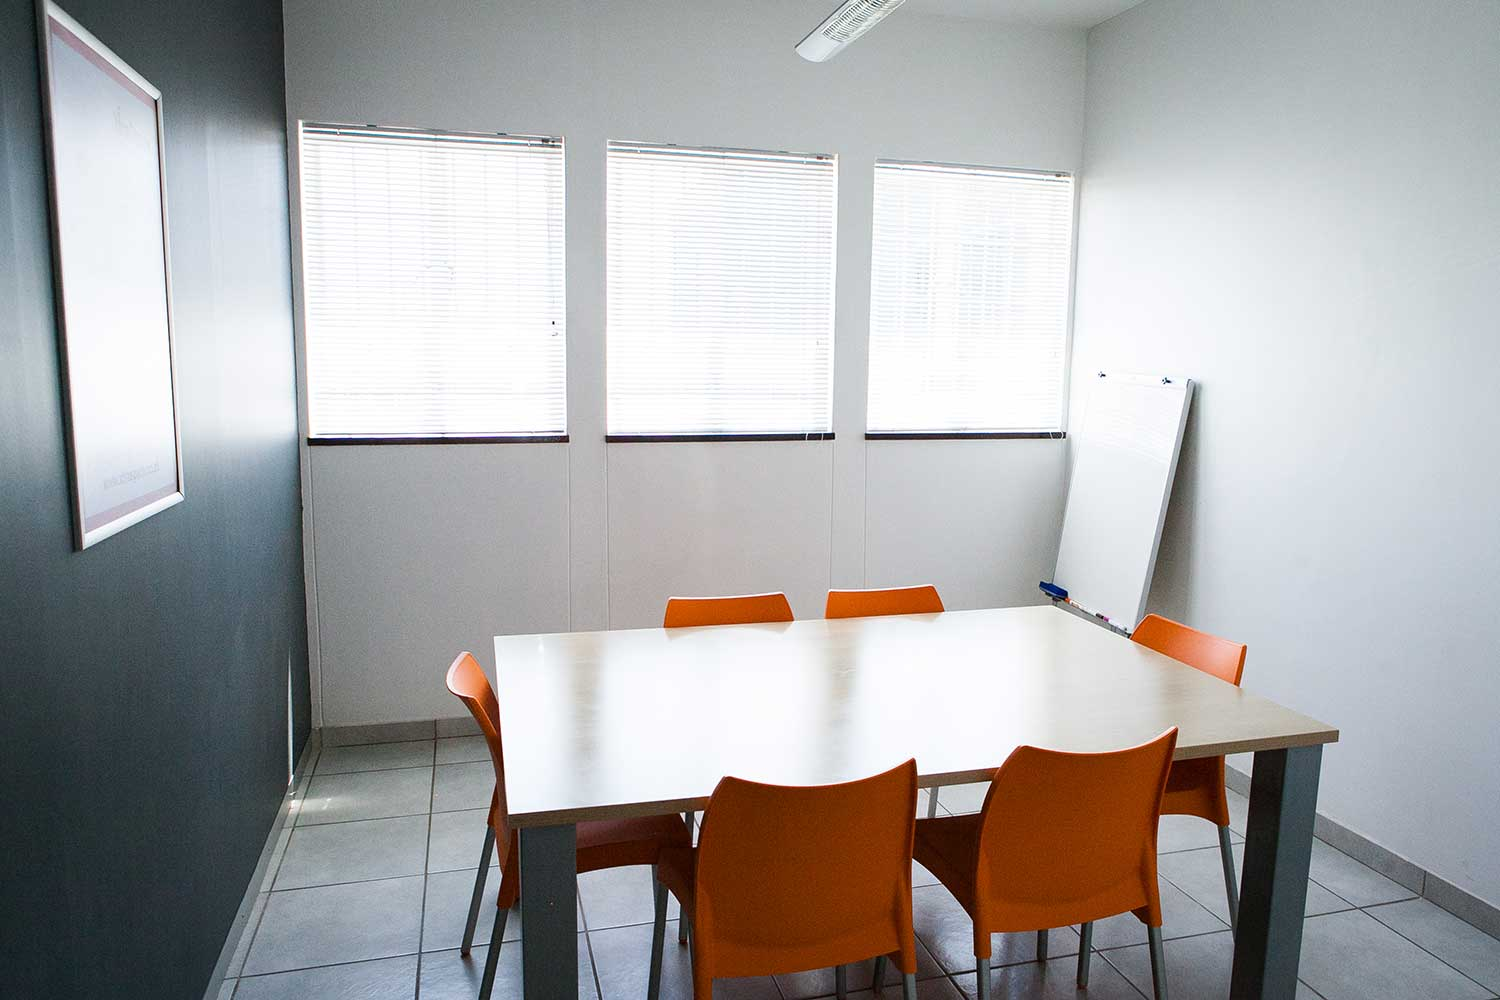 Flexi office meeting room at XtraSpace Booysens